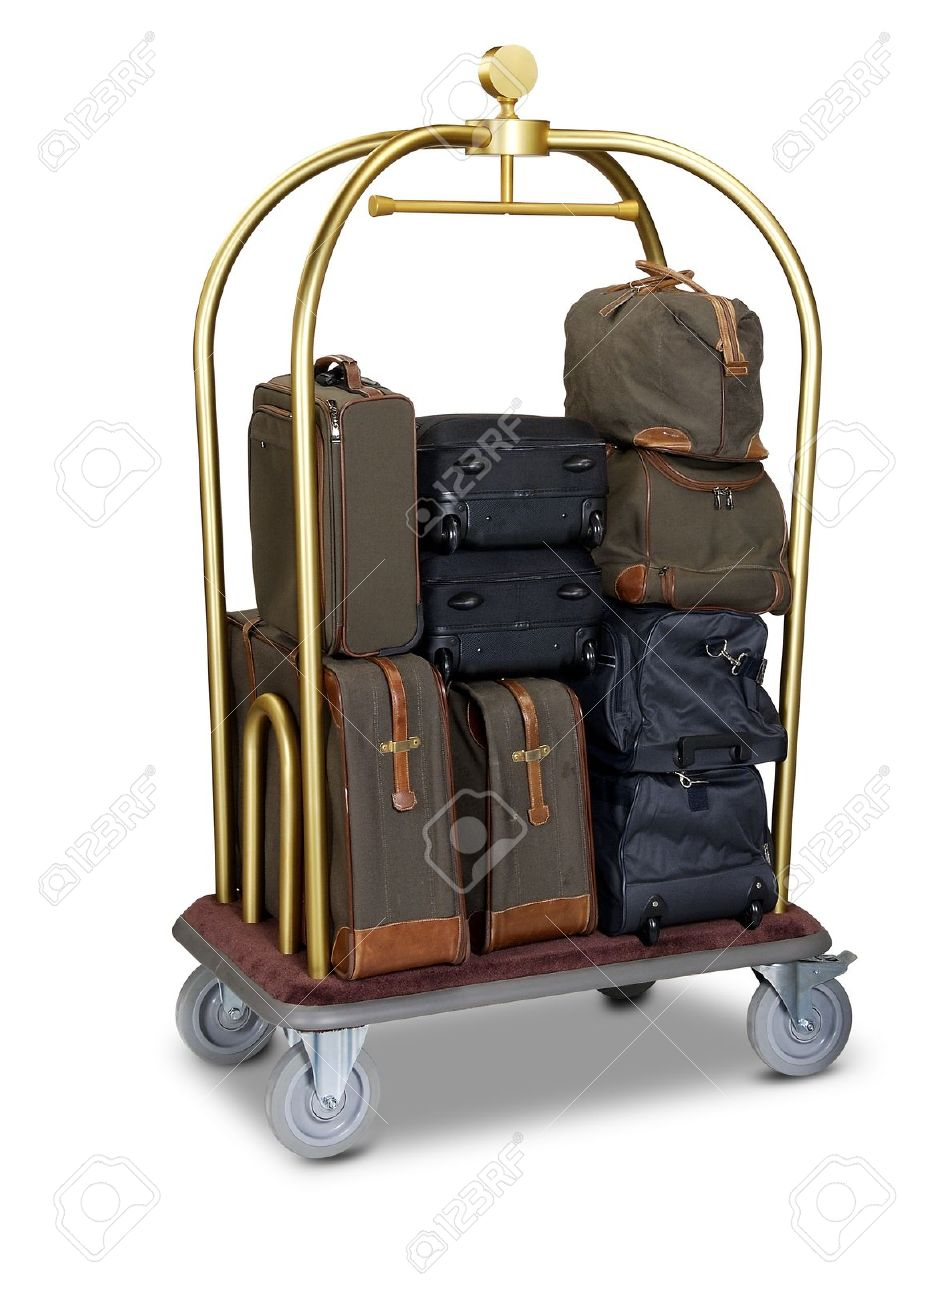 hotel baggage cart isolated on white background Standard-Bild - 12414276